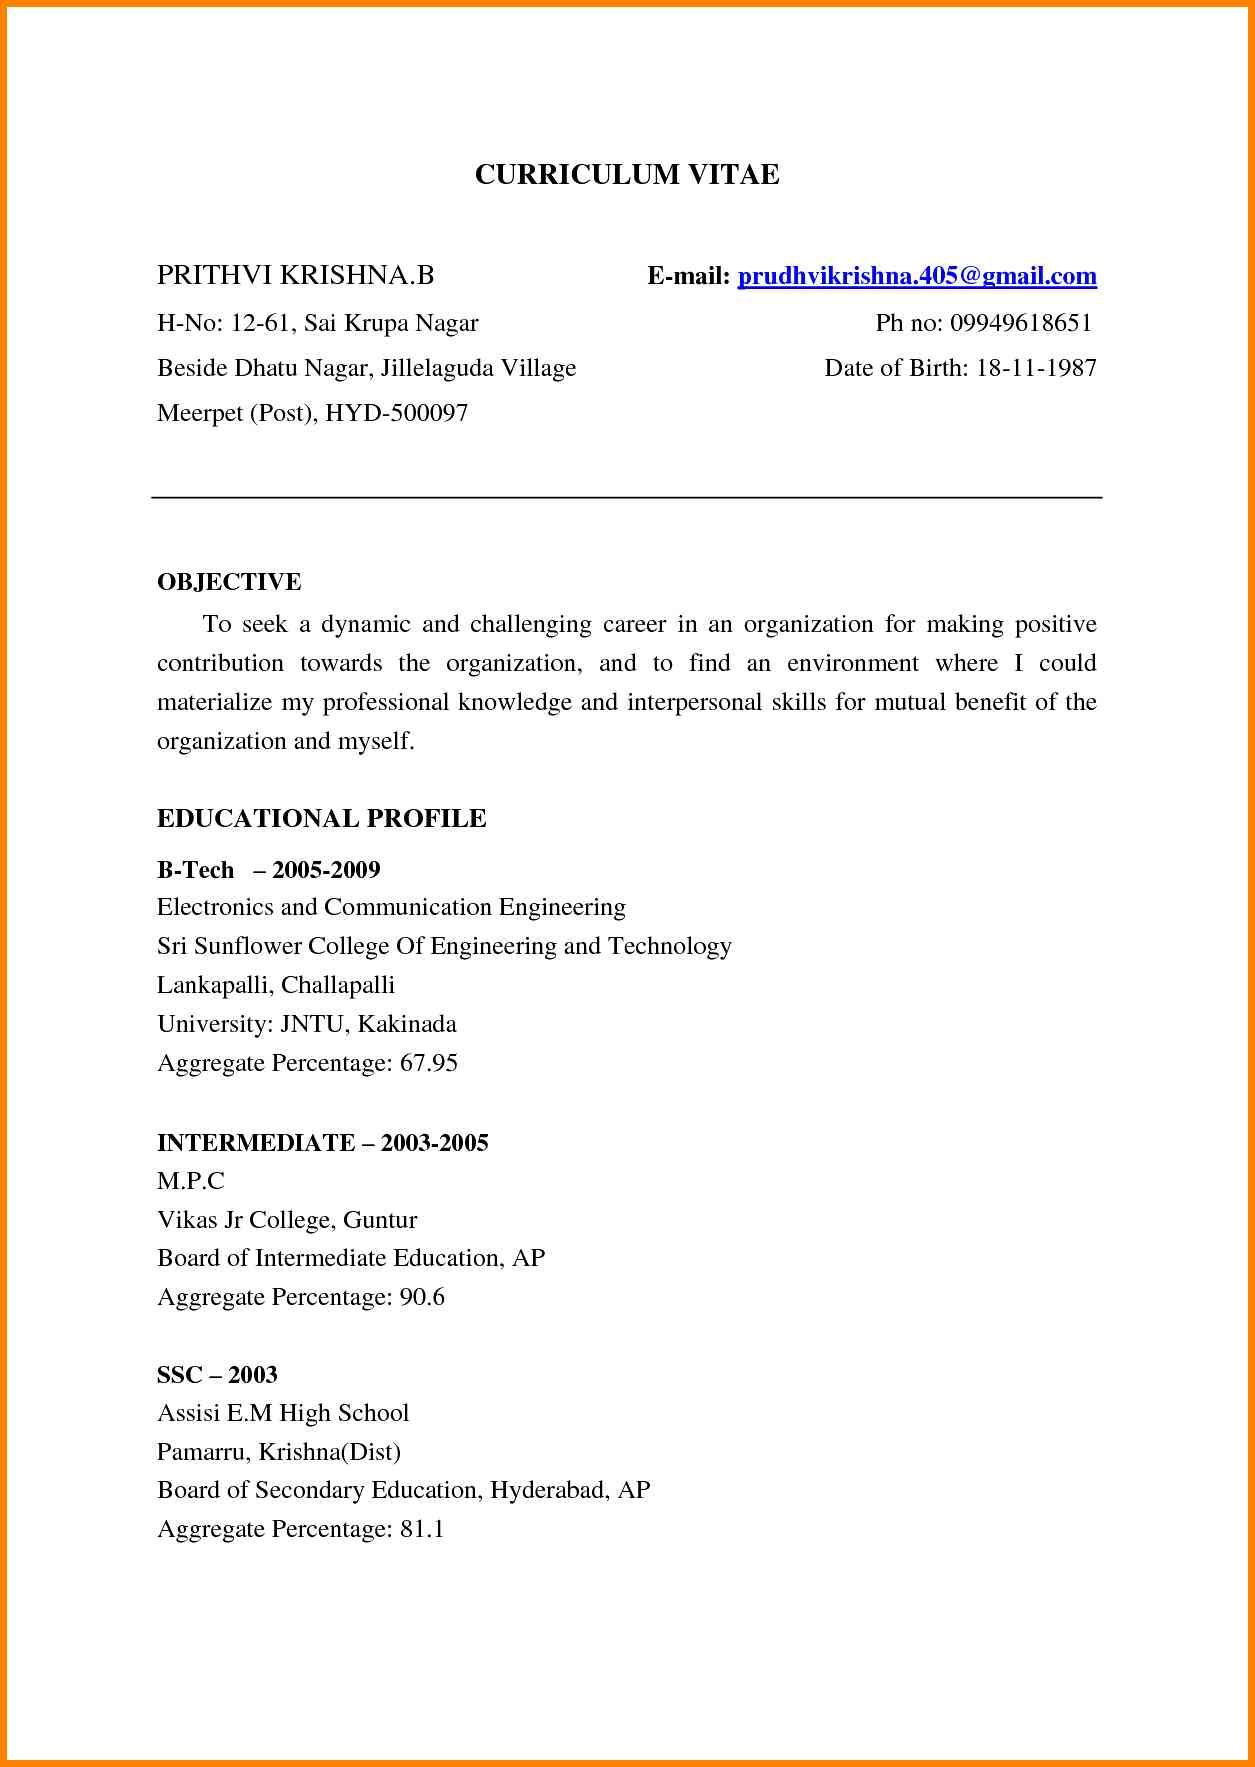 Download Resume Format For Freshers Ece Engineers Fresher